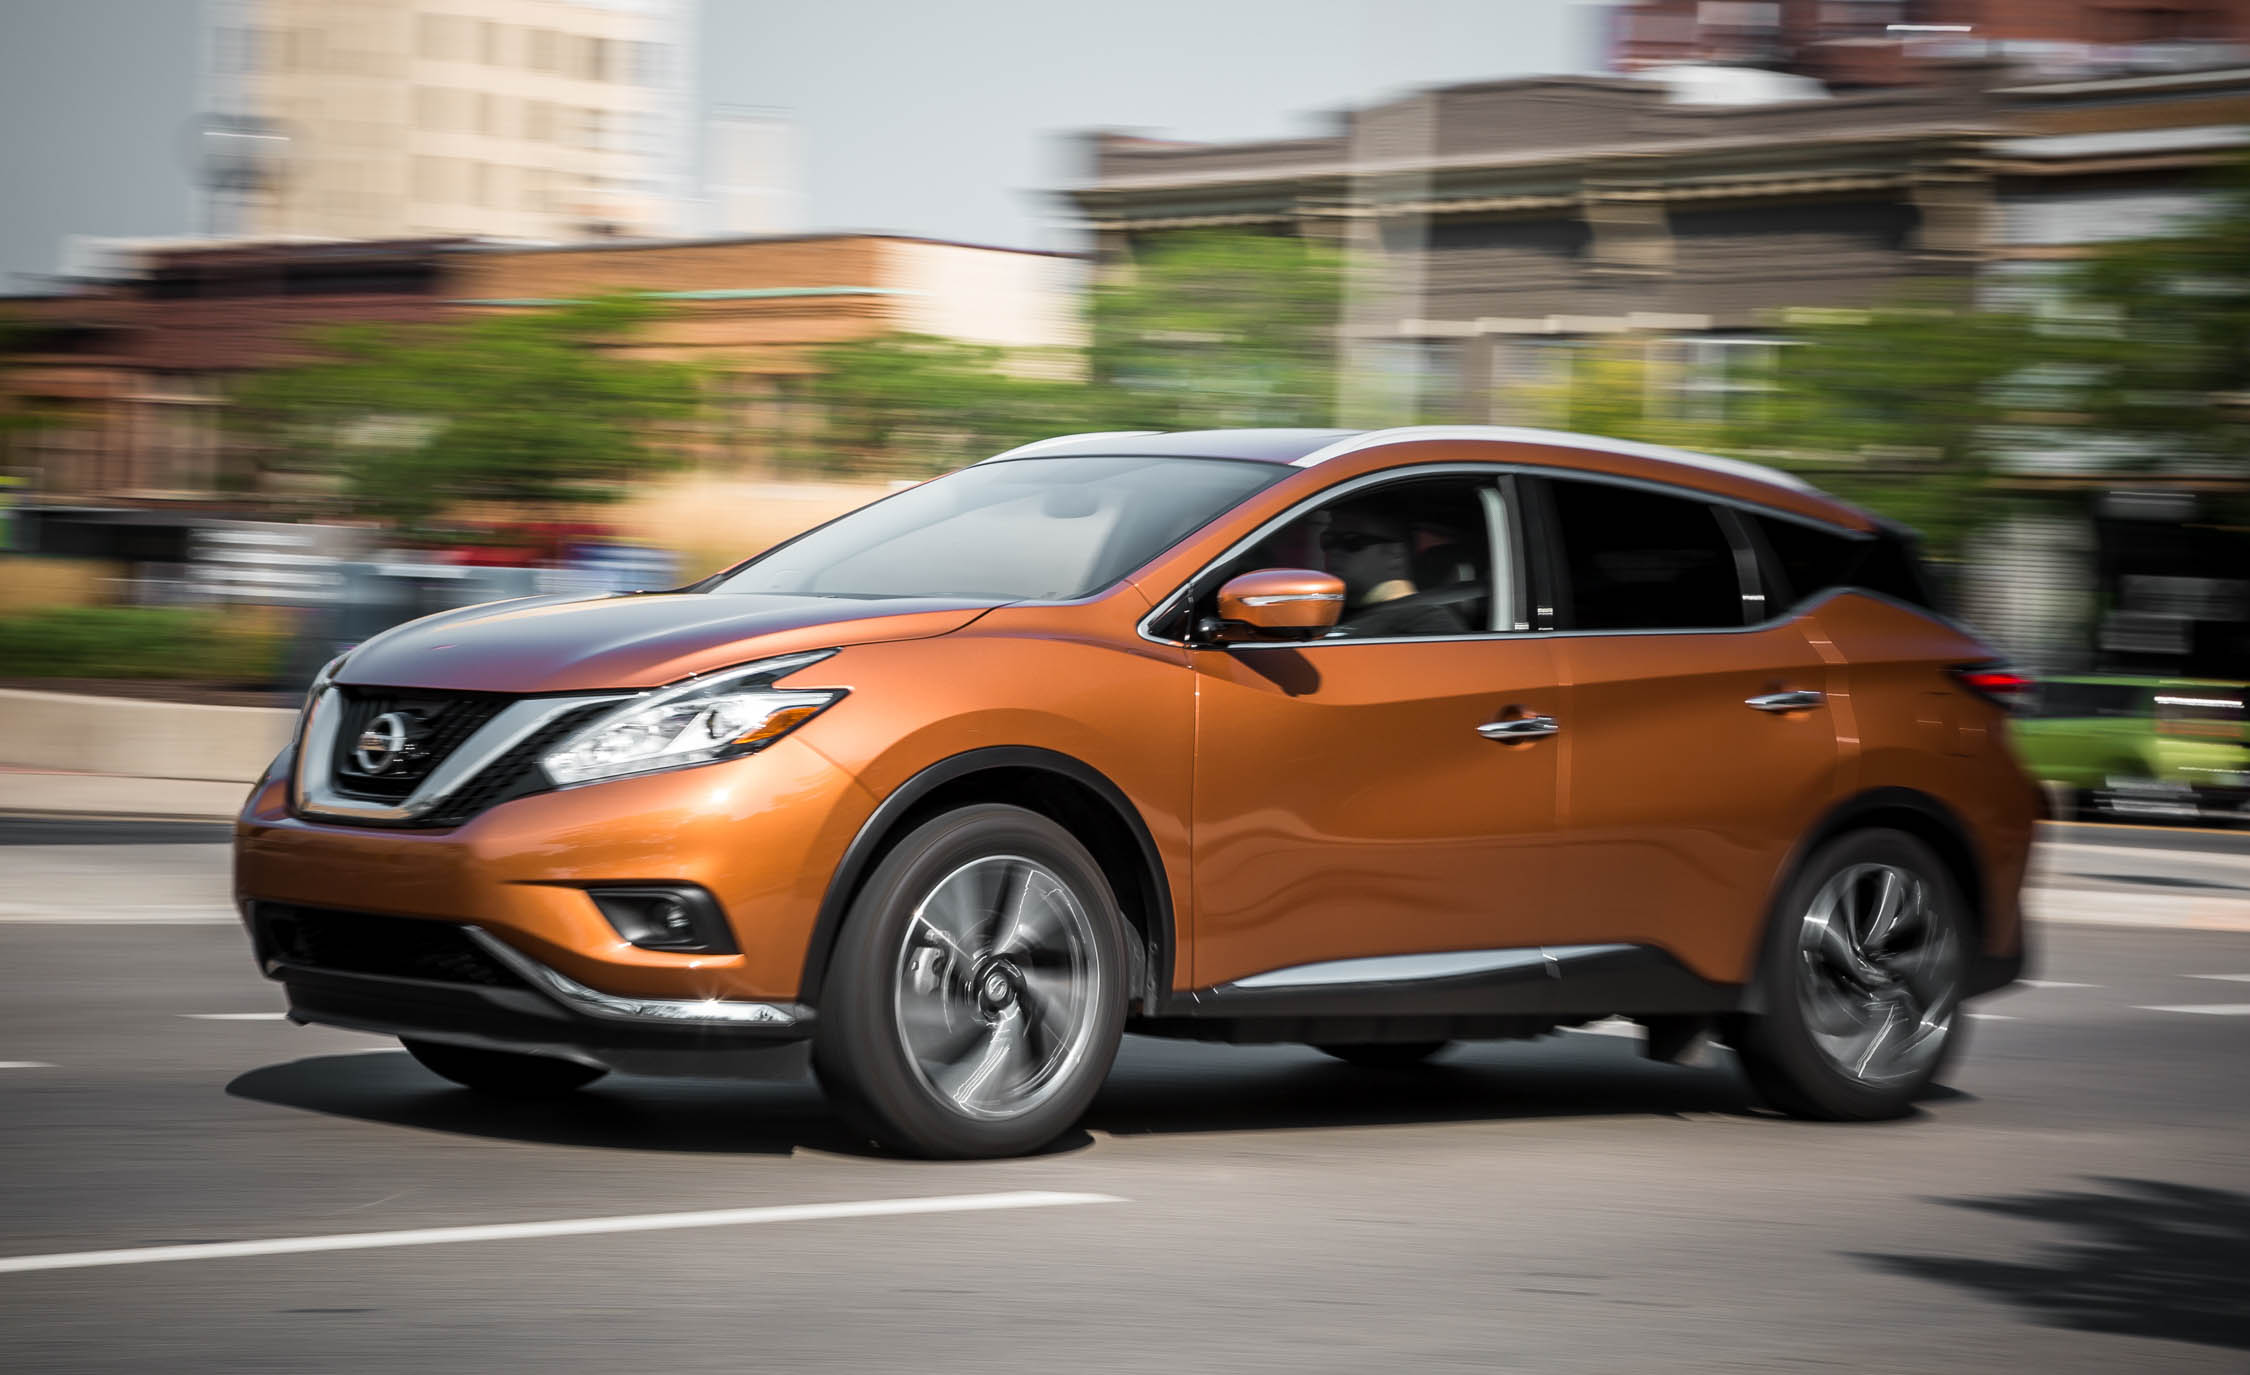 2015 nissan murano 8819 cars performance reviews and test drive. Black Bedroom Furniture Sets. Home Design Ideas